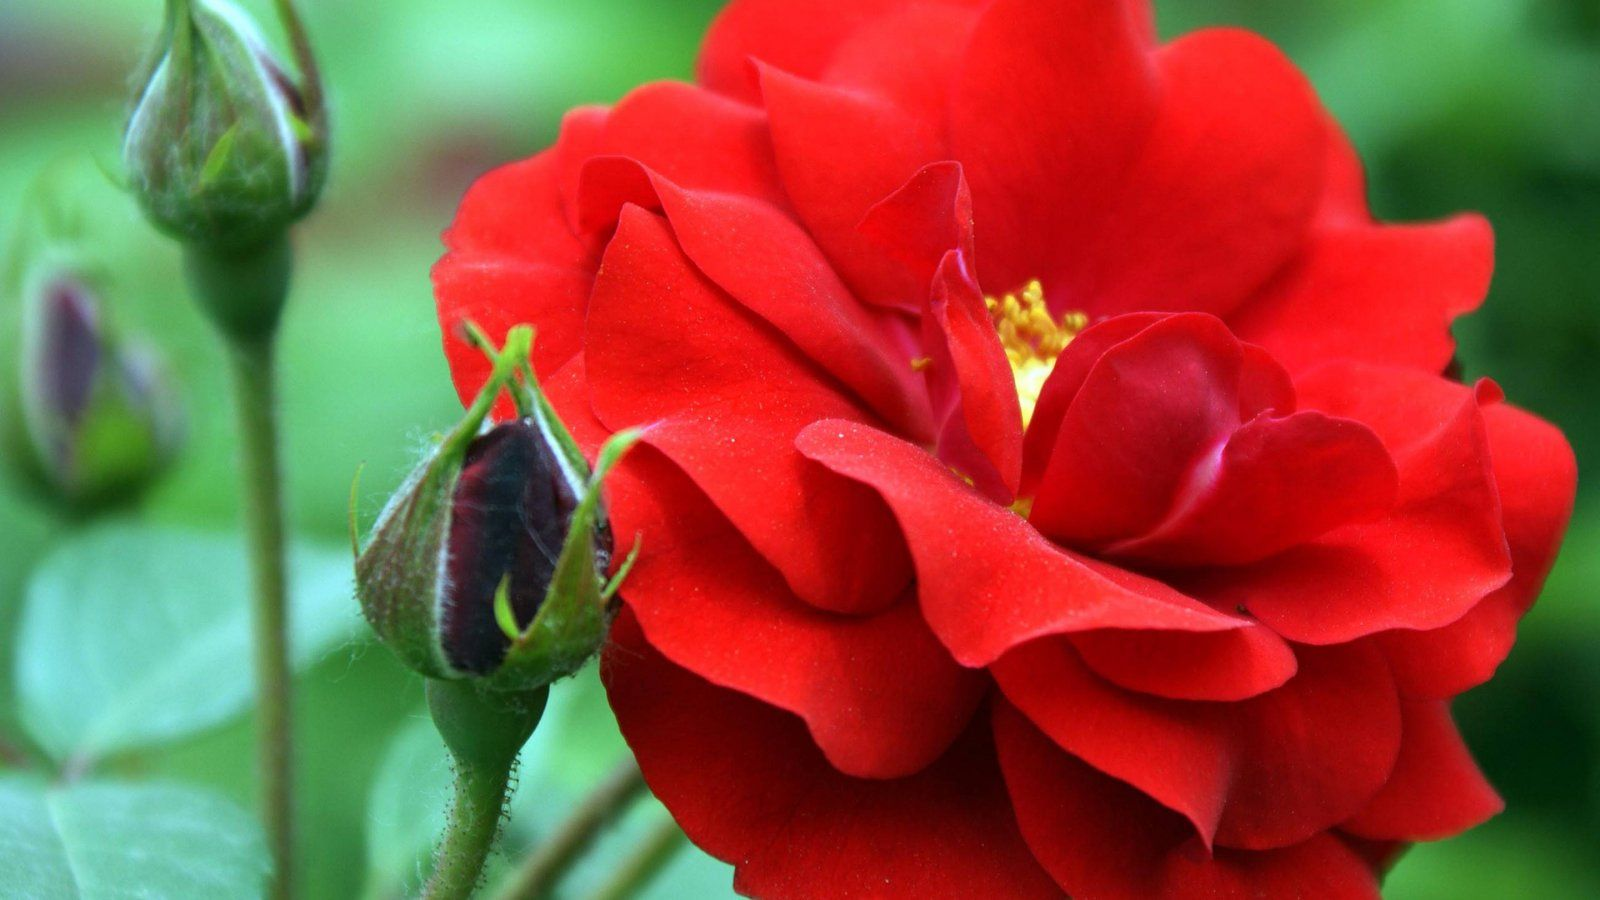 red chinese rose flower hd images 4k pinterest hd images